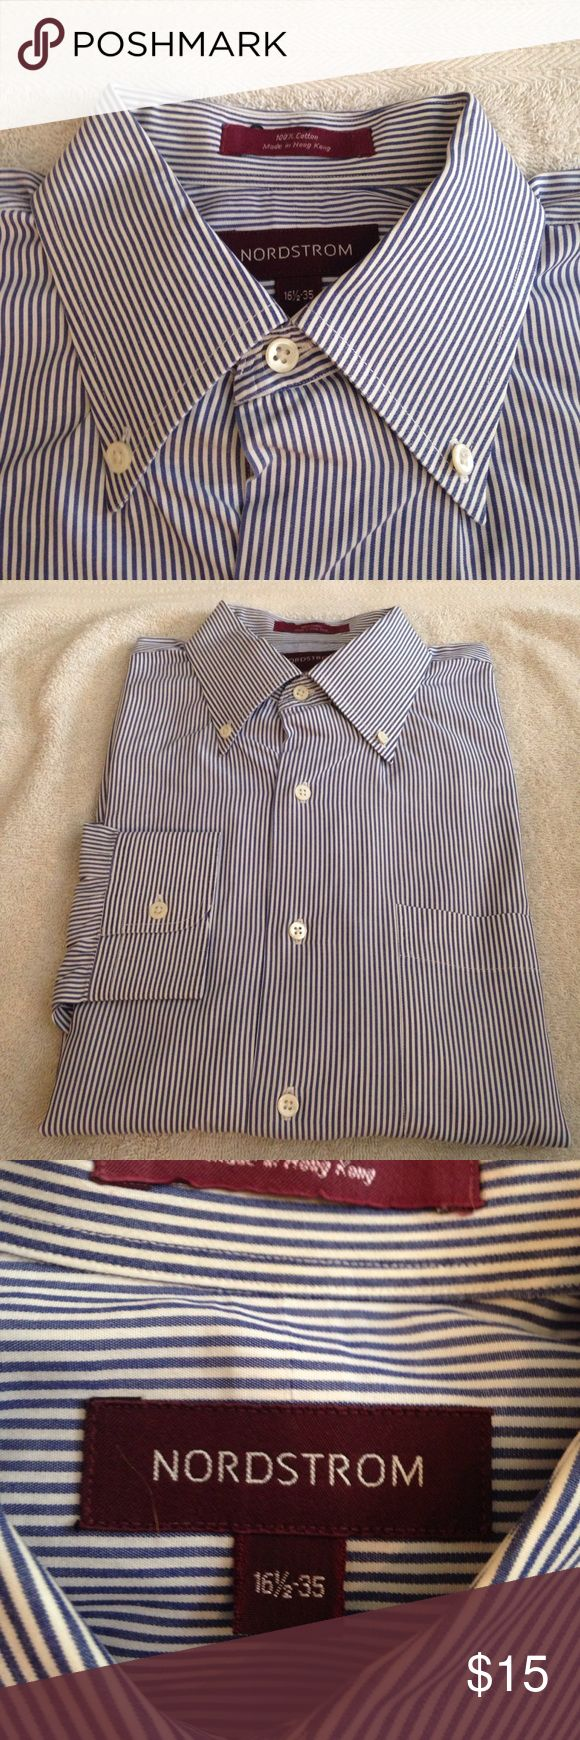 Nordstrom White & Navy Stripe Dress Shirt 16.5-35 Nordstrom White and Navy Blue Stripe Dress Shirt size 16.5-35! Great condition! Please make reasonable offers and bundle! Ask questions :) Nordstrom Shirts Dress Shirts